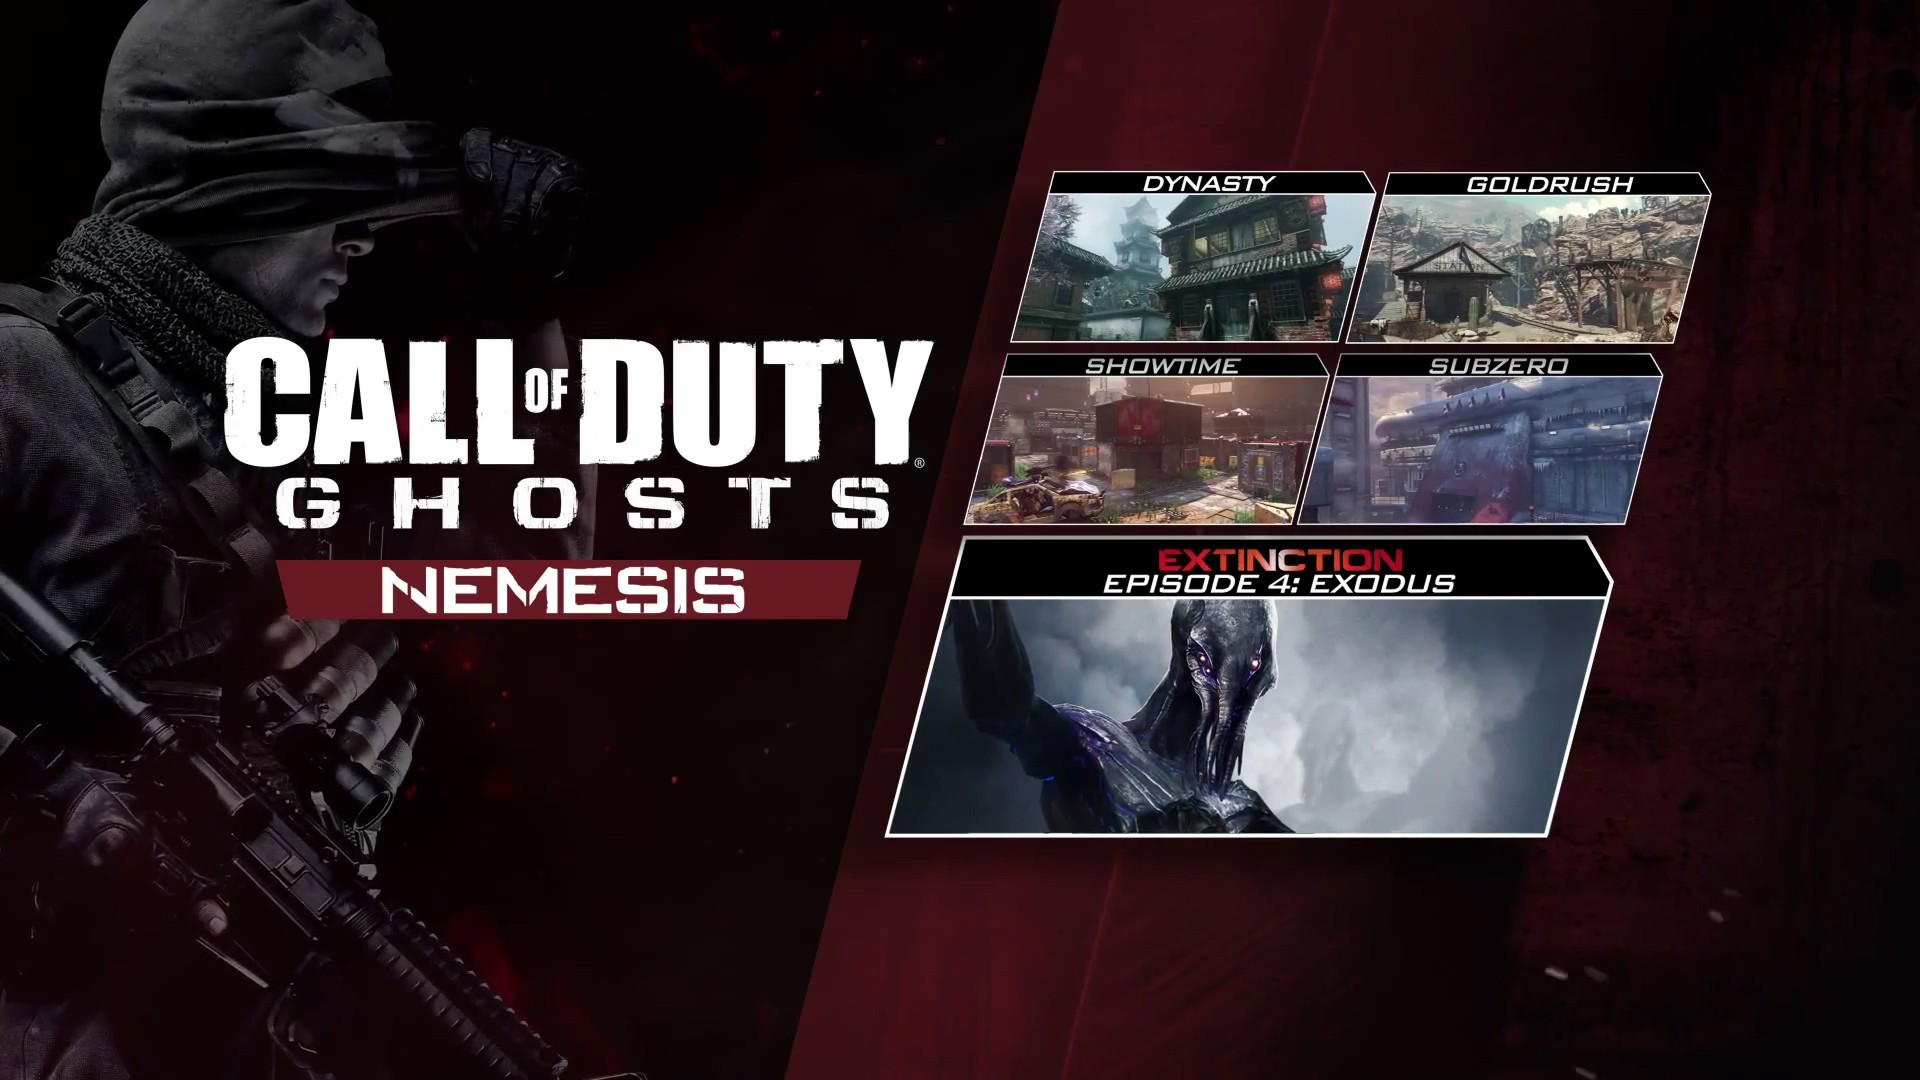 Nemesis (DLC) | Call of Duty Wiki | FANDOM powered by Wikia